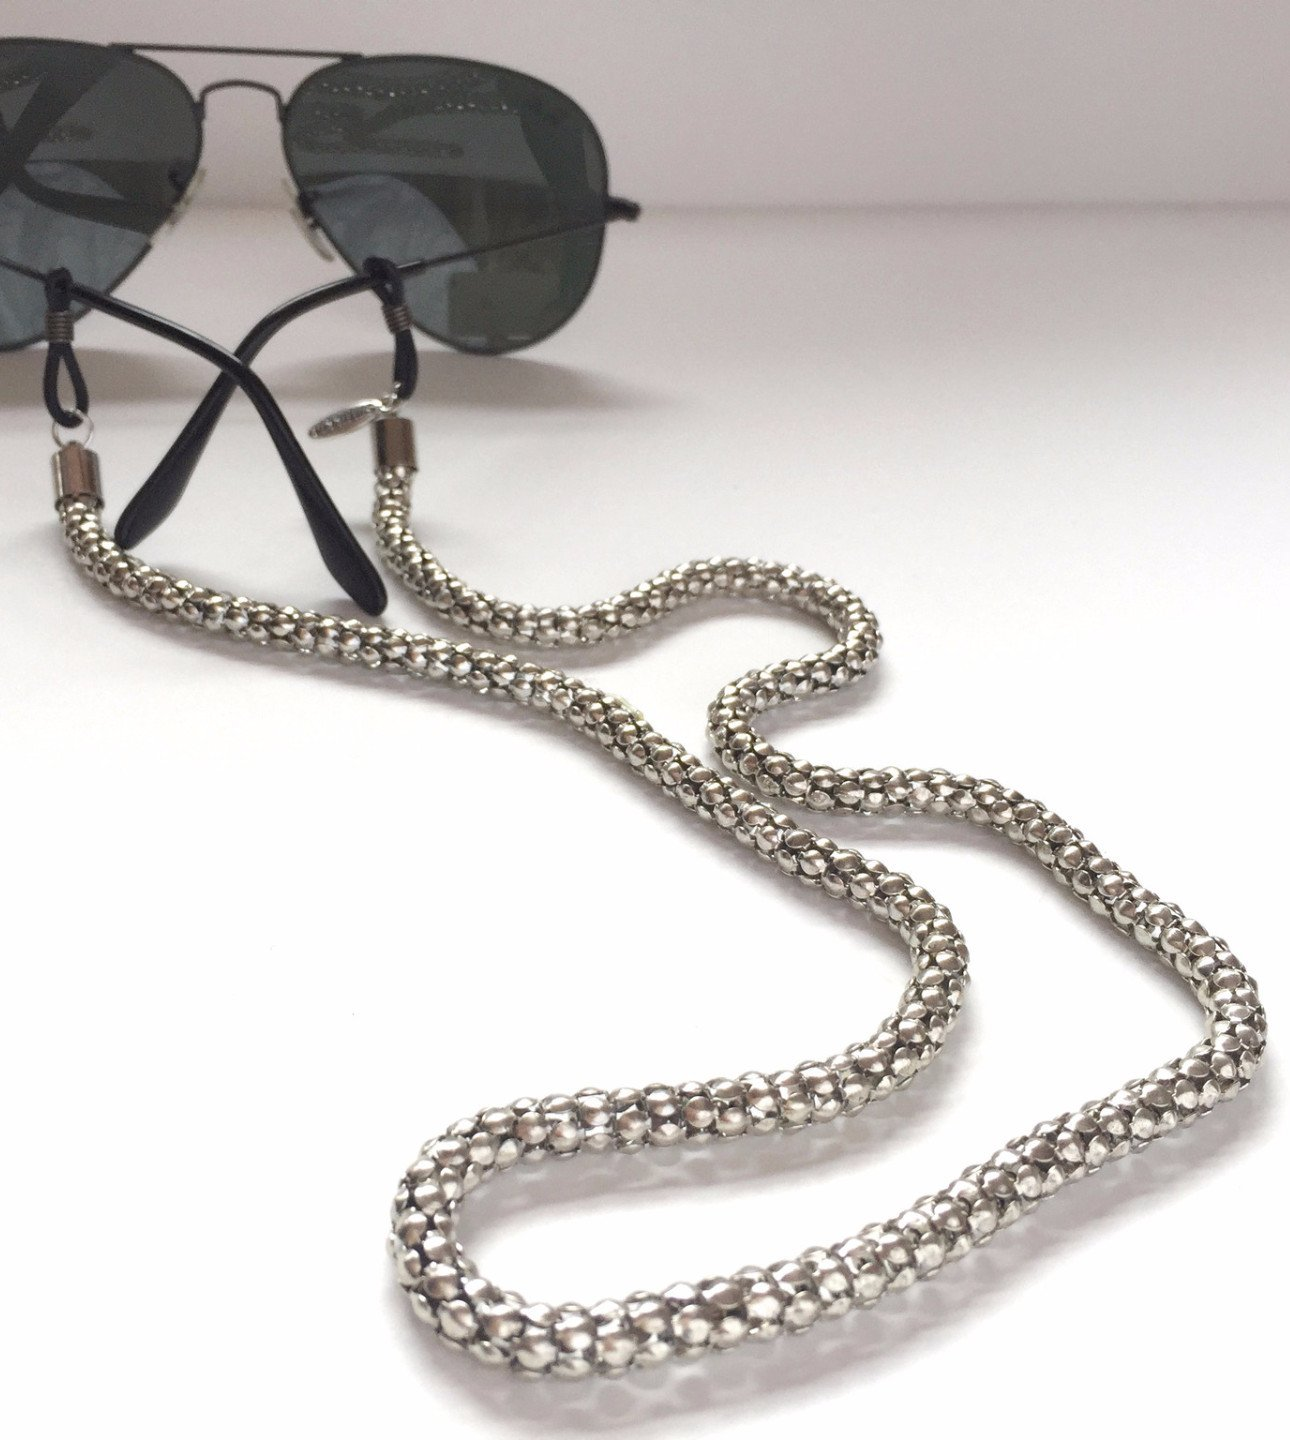 Sintillia Silver Glow Chain Sunglass Strap, Glasses Chain, Eyeglass Cord, Skinny (6mm) with Clear Attachments